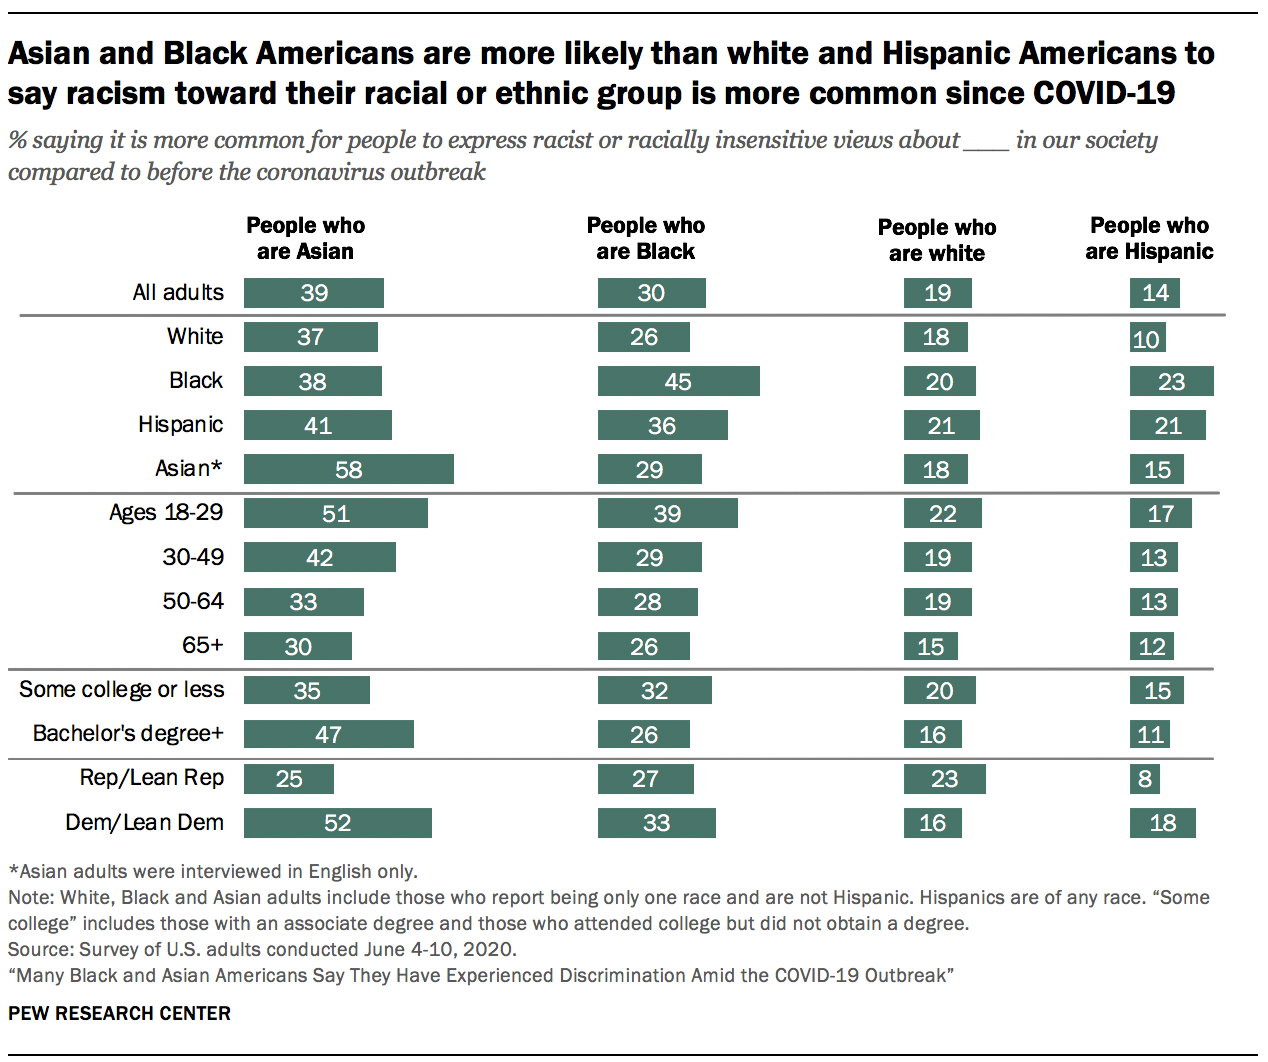 Asian and Black Americans are more likely than white and Hispanic Americans to say racism toward their racial or ethnic group is more common since COVID-19